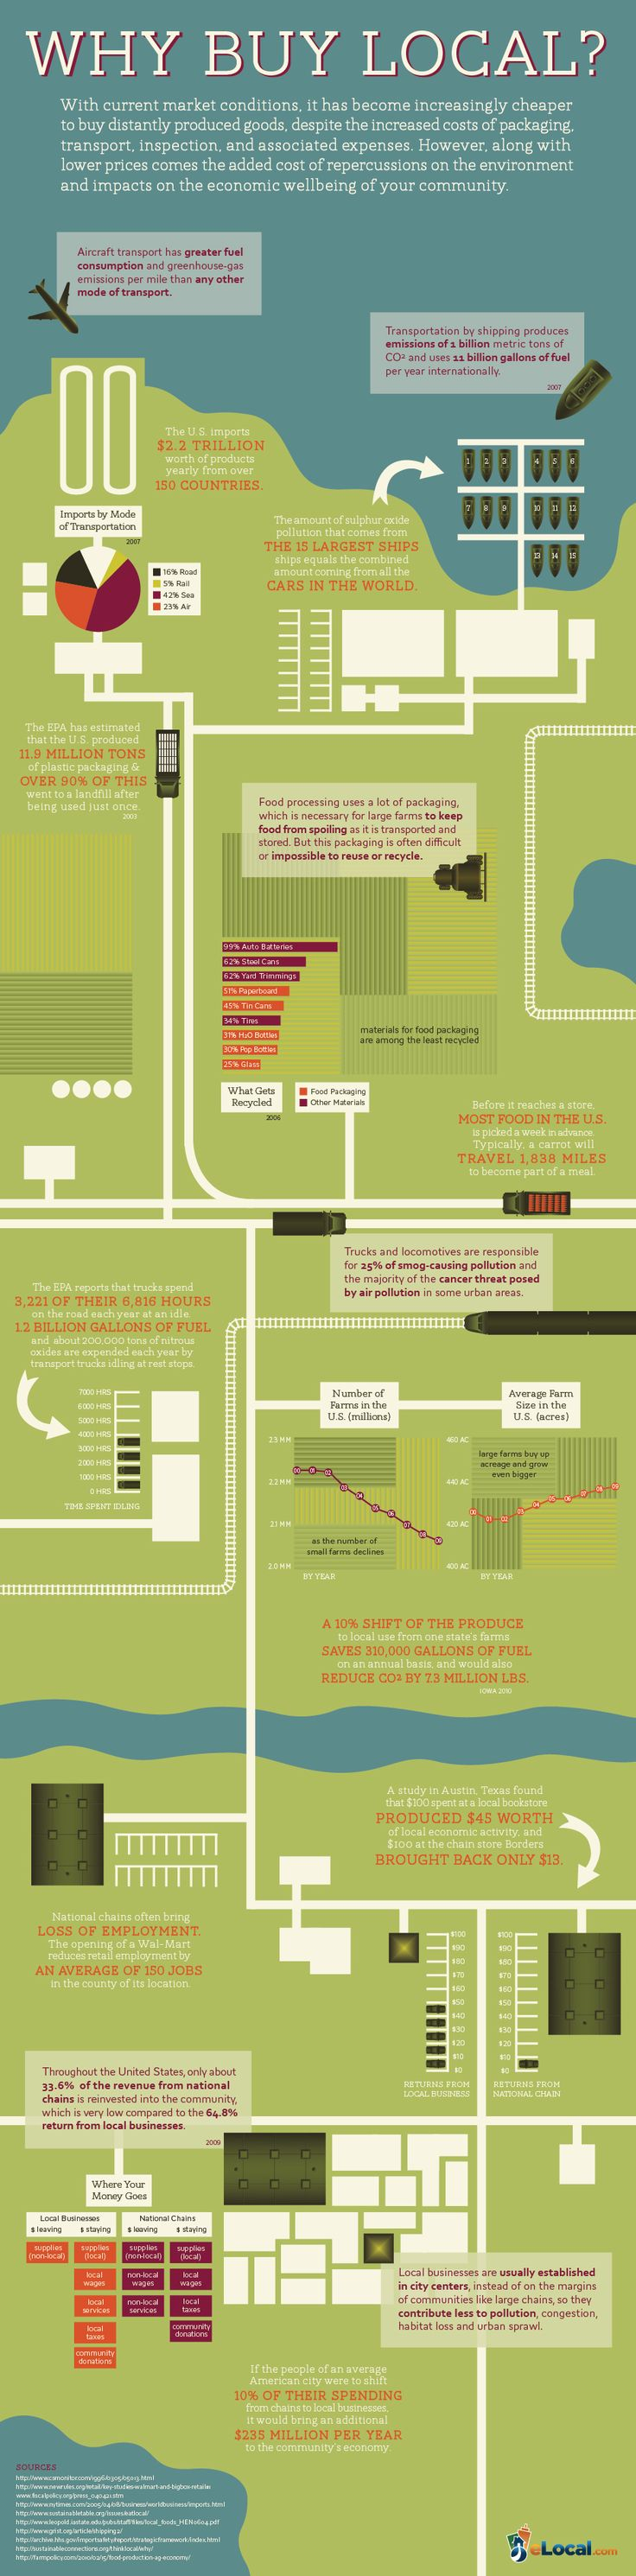 hight resolution of why buy local infographic